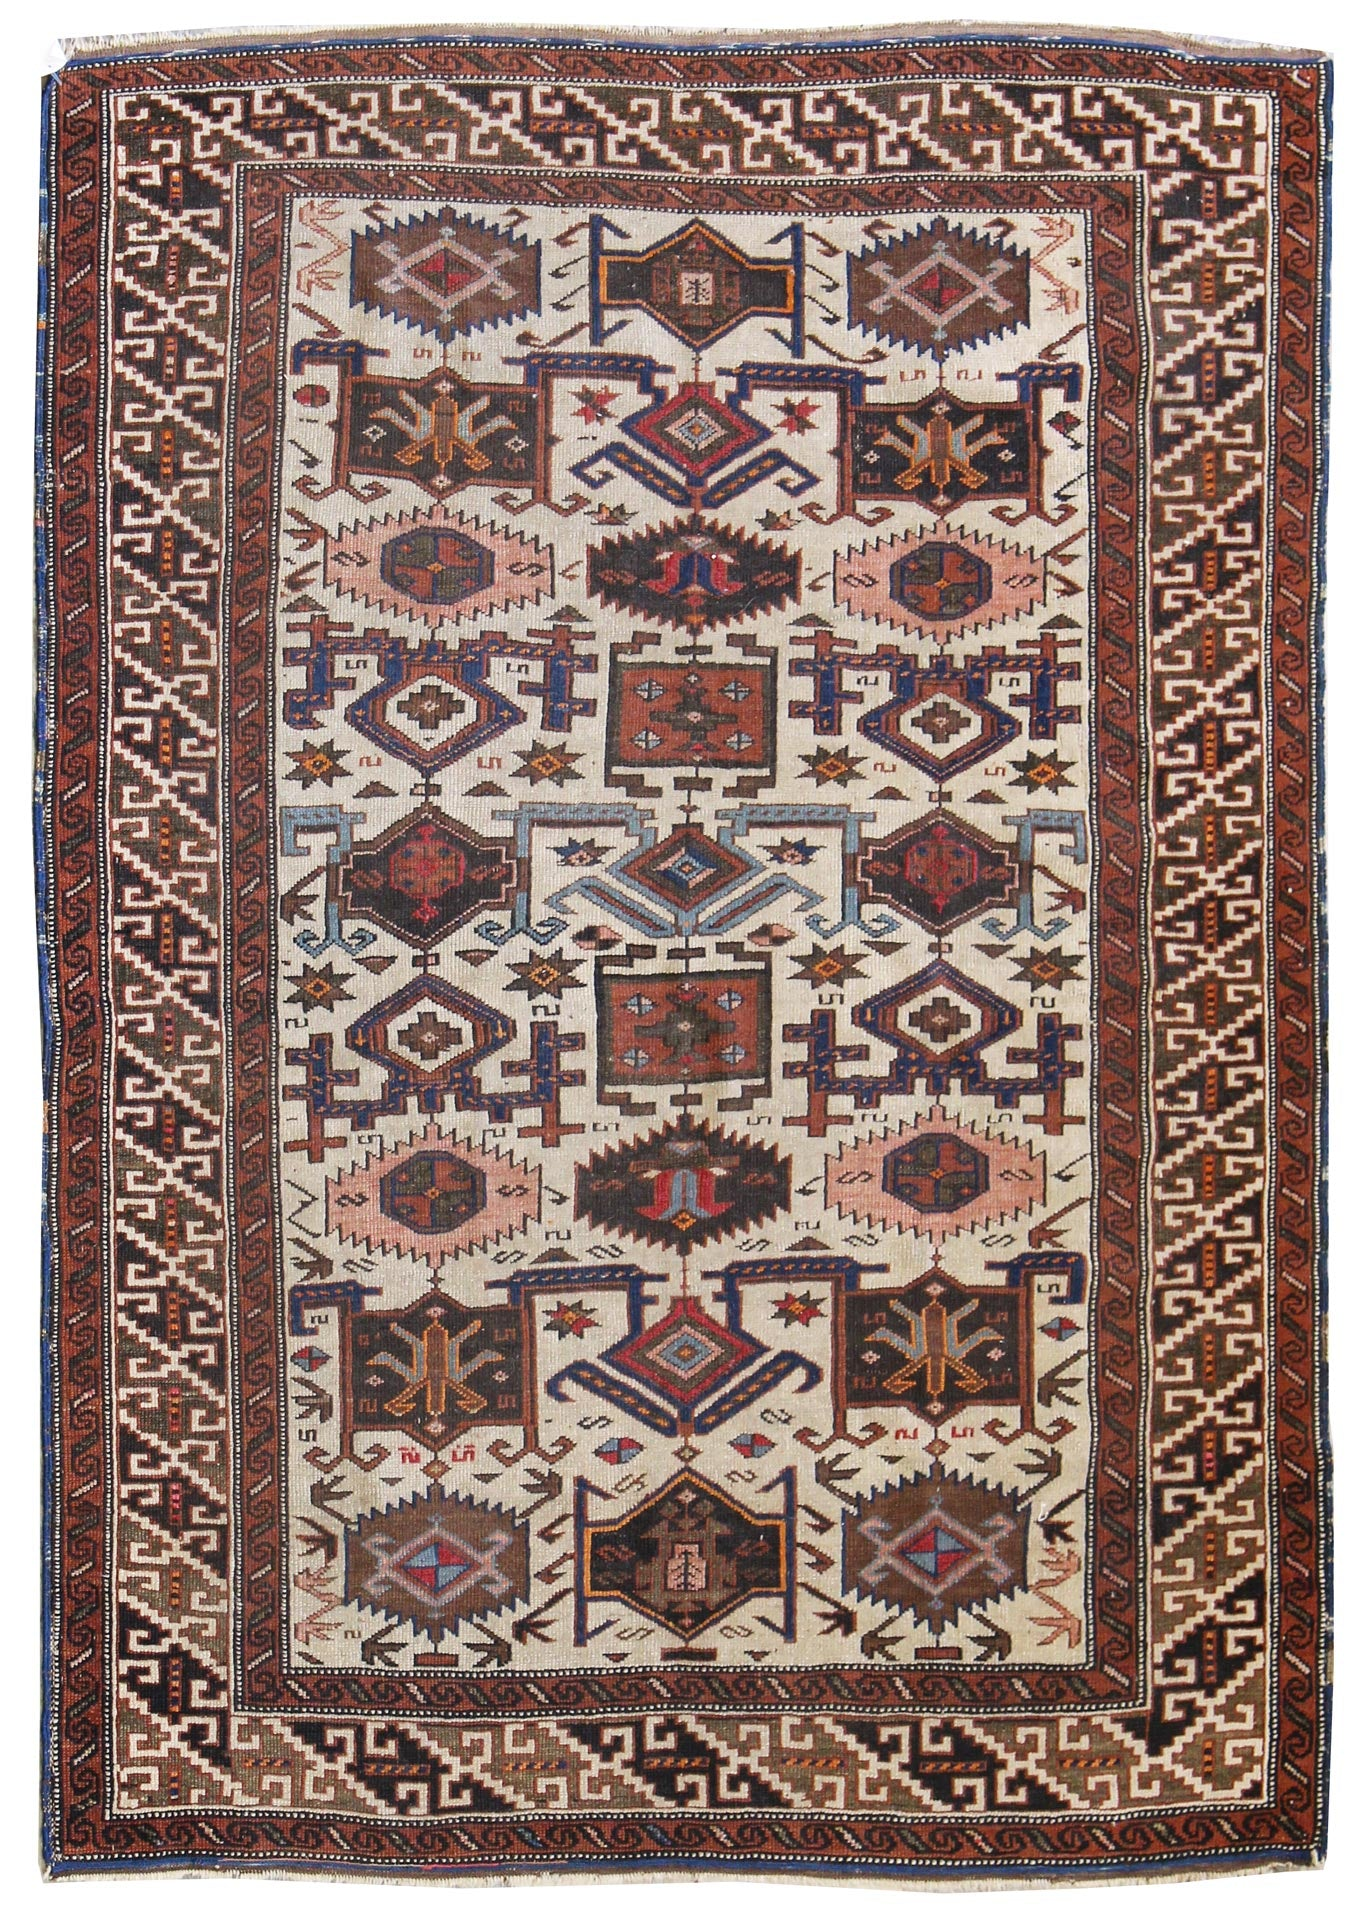 Antique Kuba Handwoven Tribal Rug